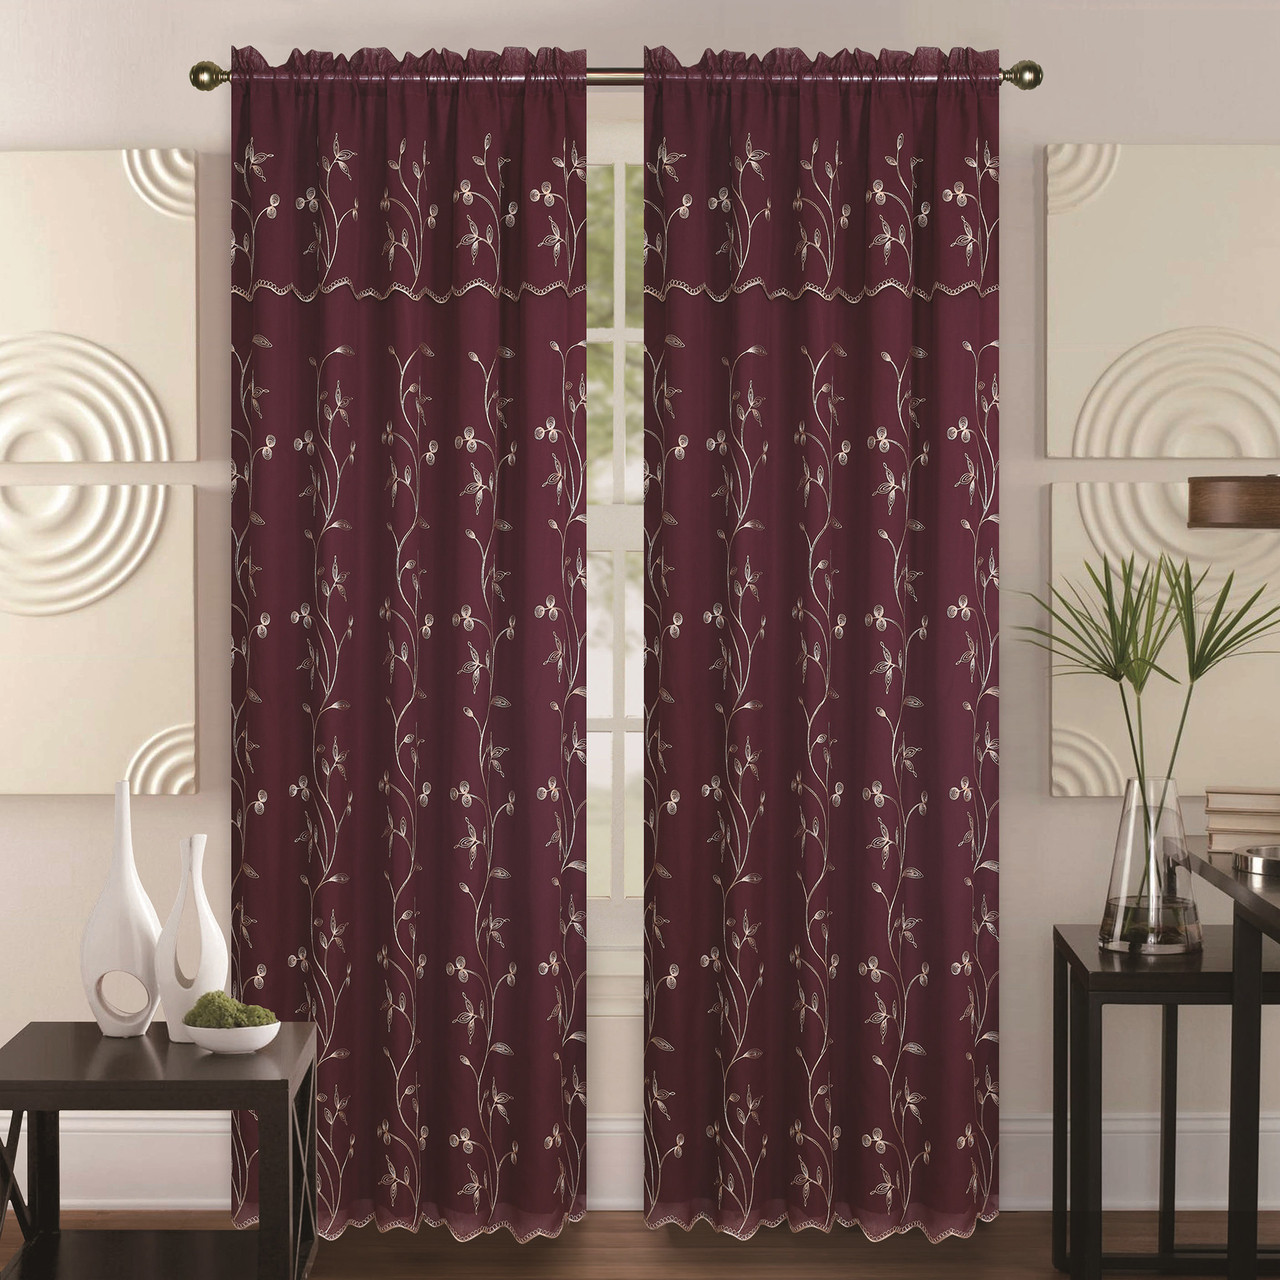 double layer embroidery floral vine sheer front fauz silk back rod pocket decorative curtain - Decorative Curtains